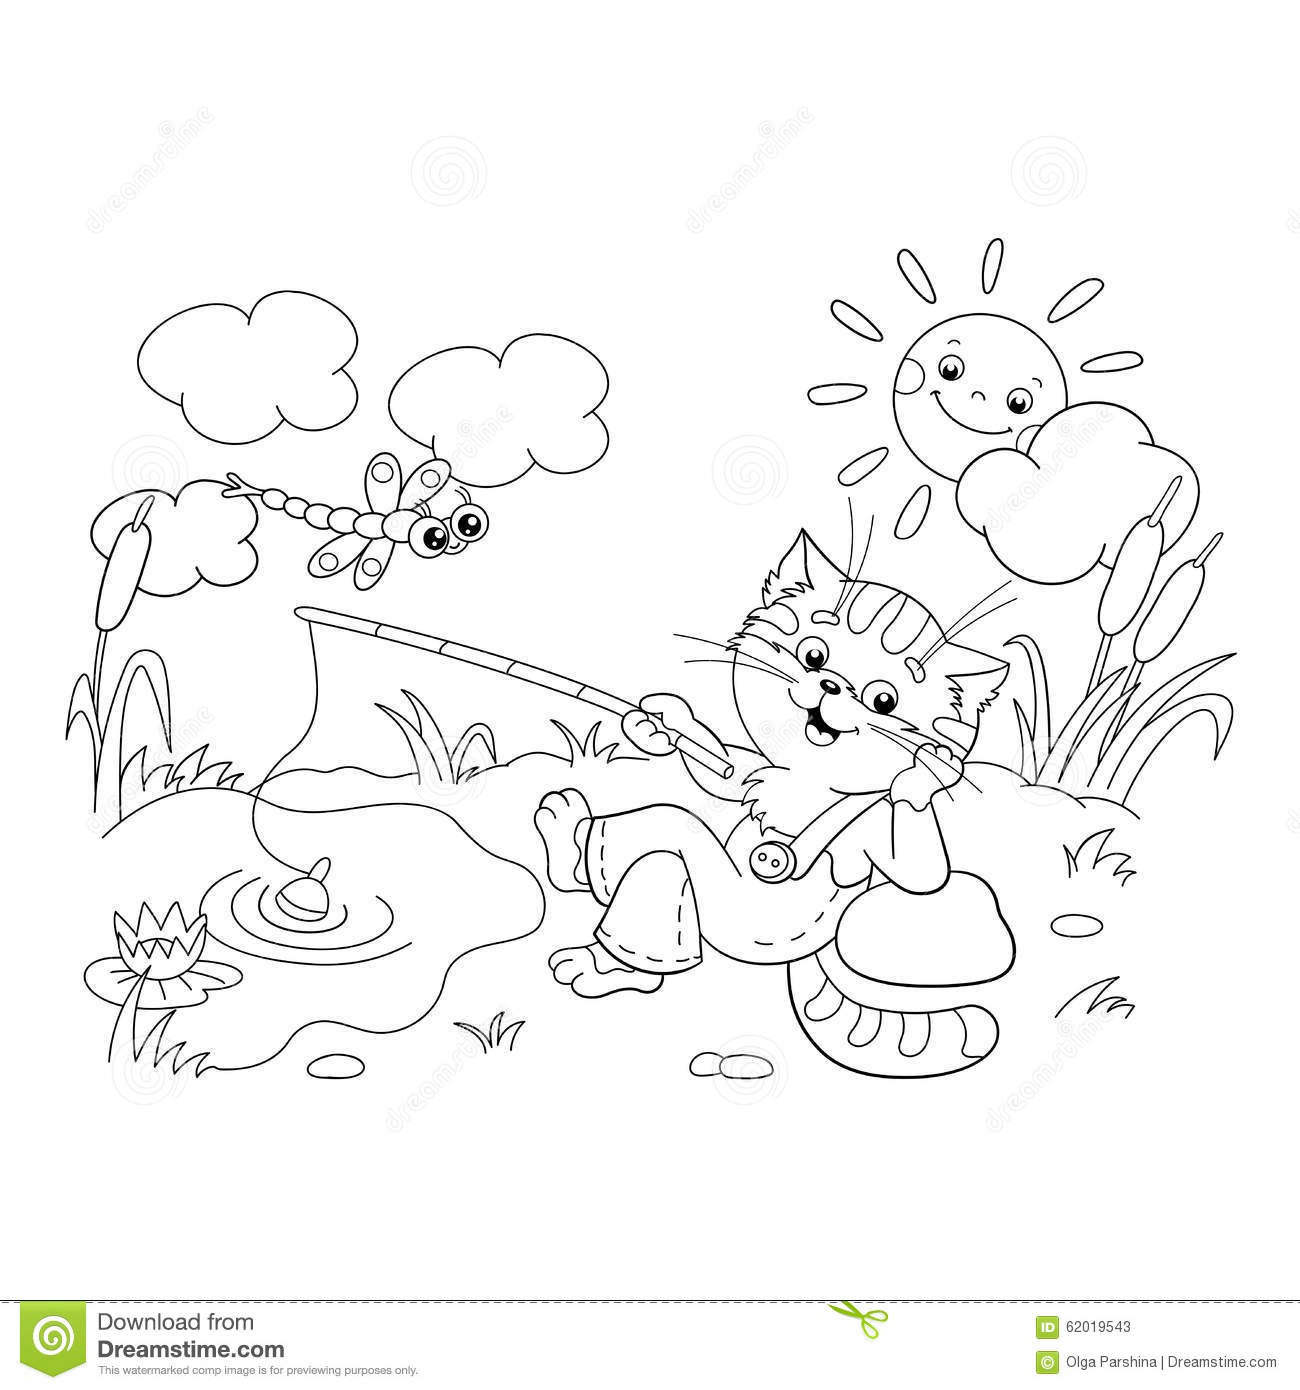 coloring page outline of a funny cat catching a fish stock vector